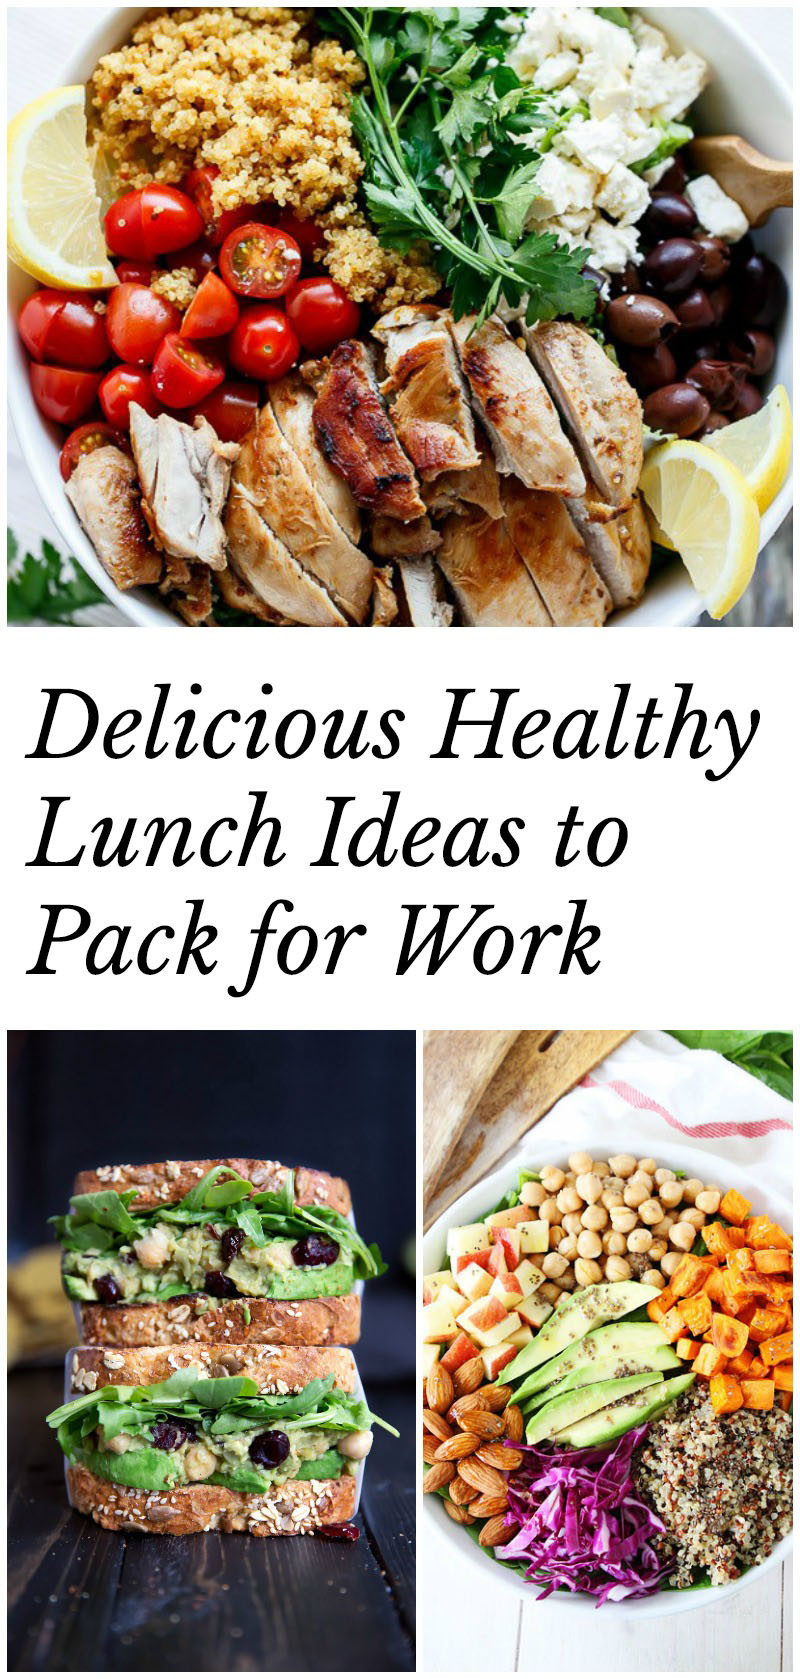 Tasty Healthy Lunches  Healthy Lunch Ideas to Pack for Work 40 recipes